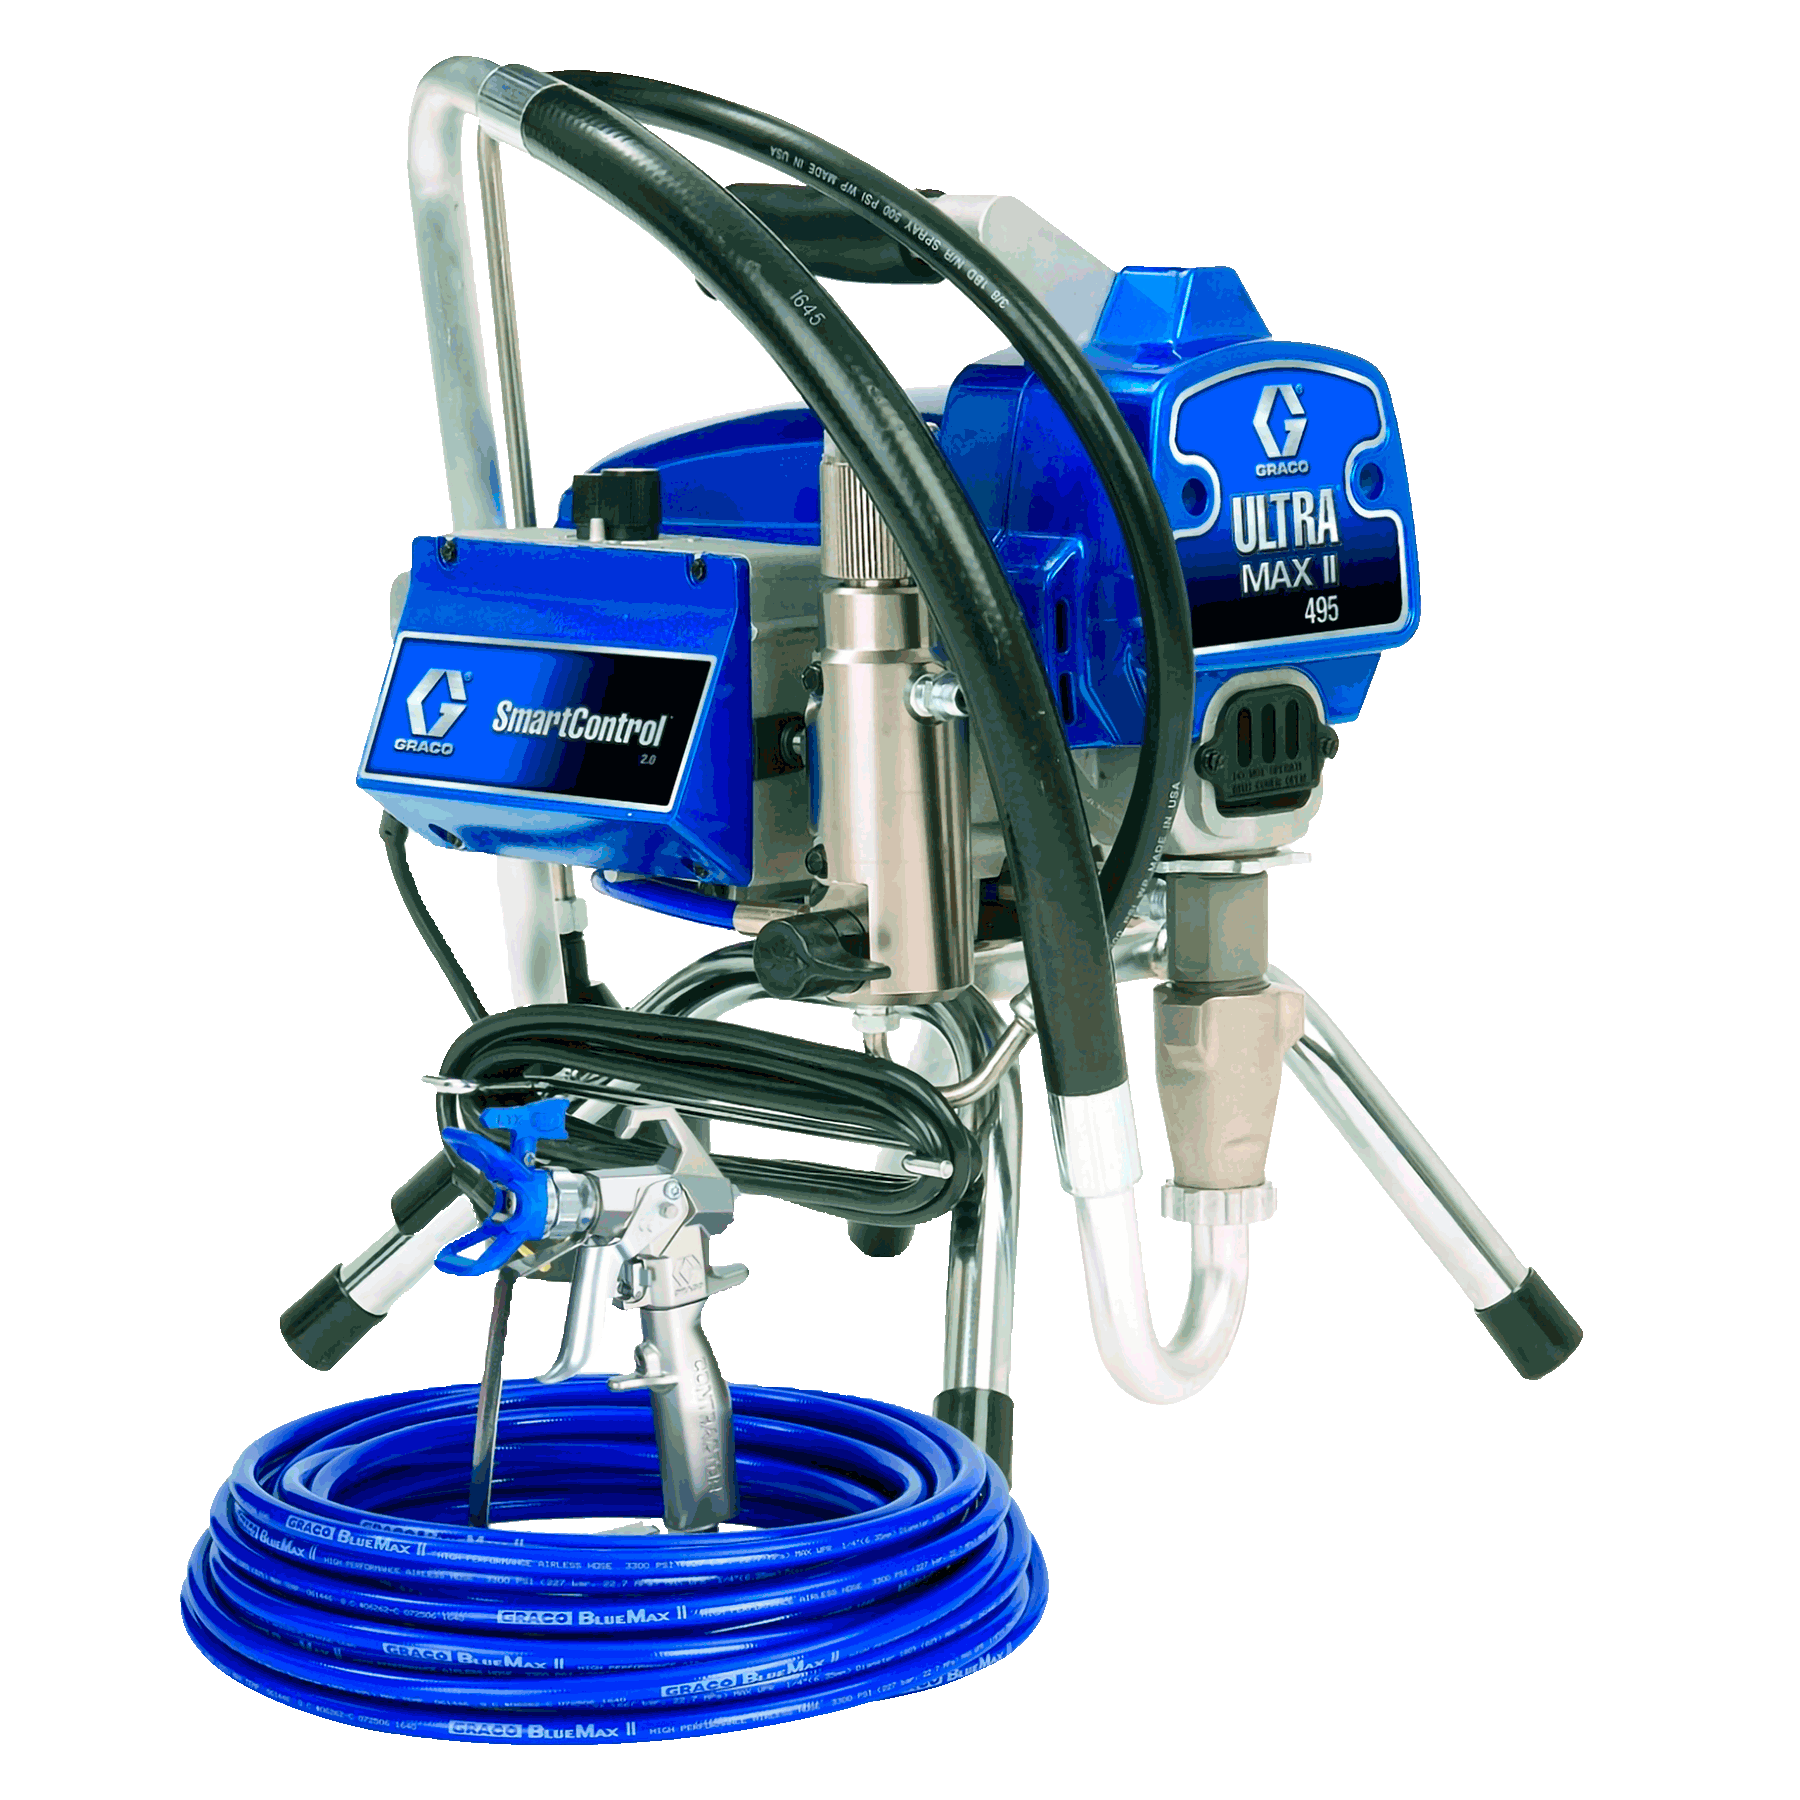 Airless paint sprayer electric